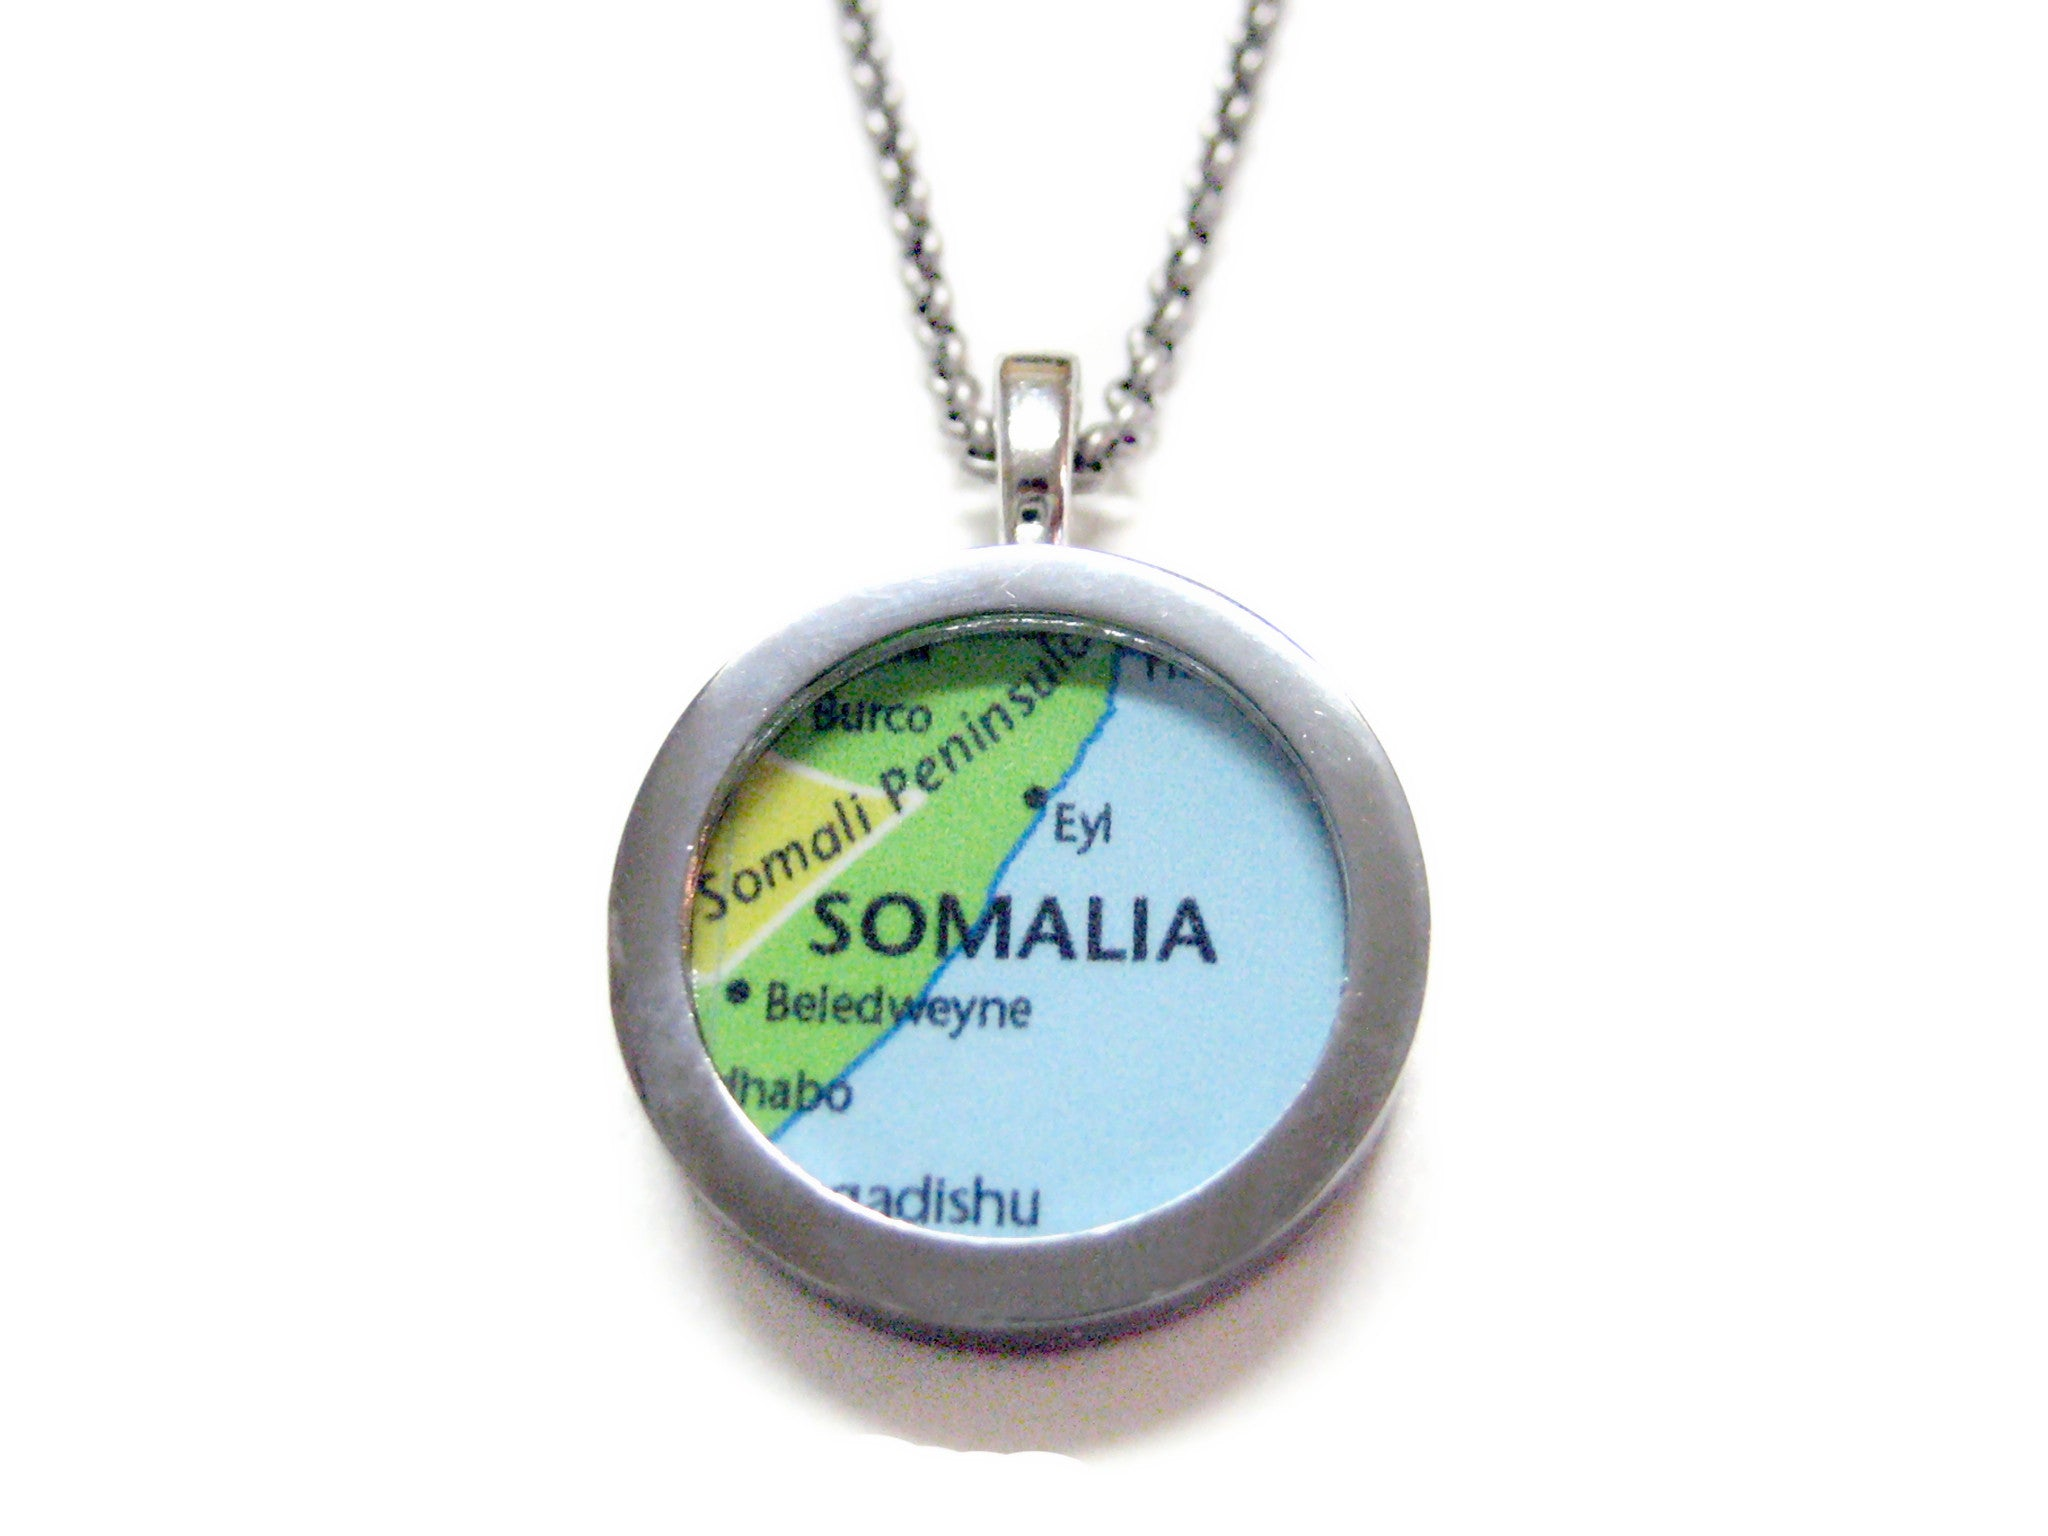 Somalia Map Pendant Necklace